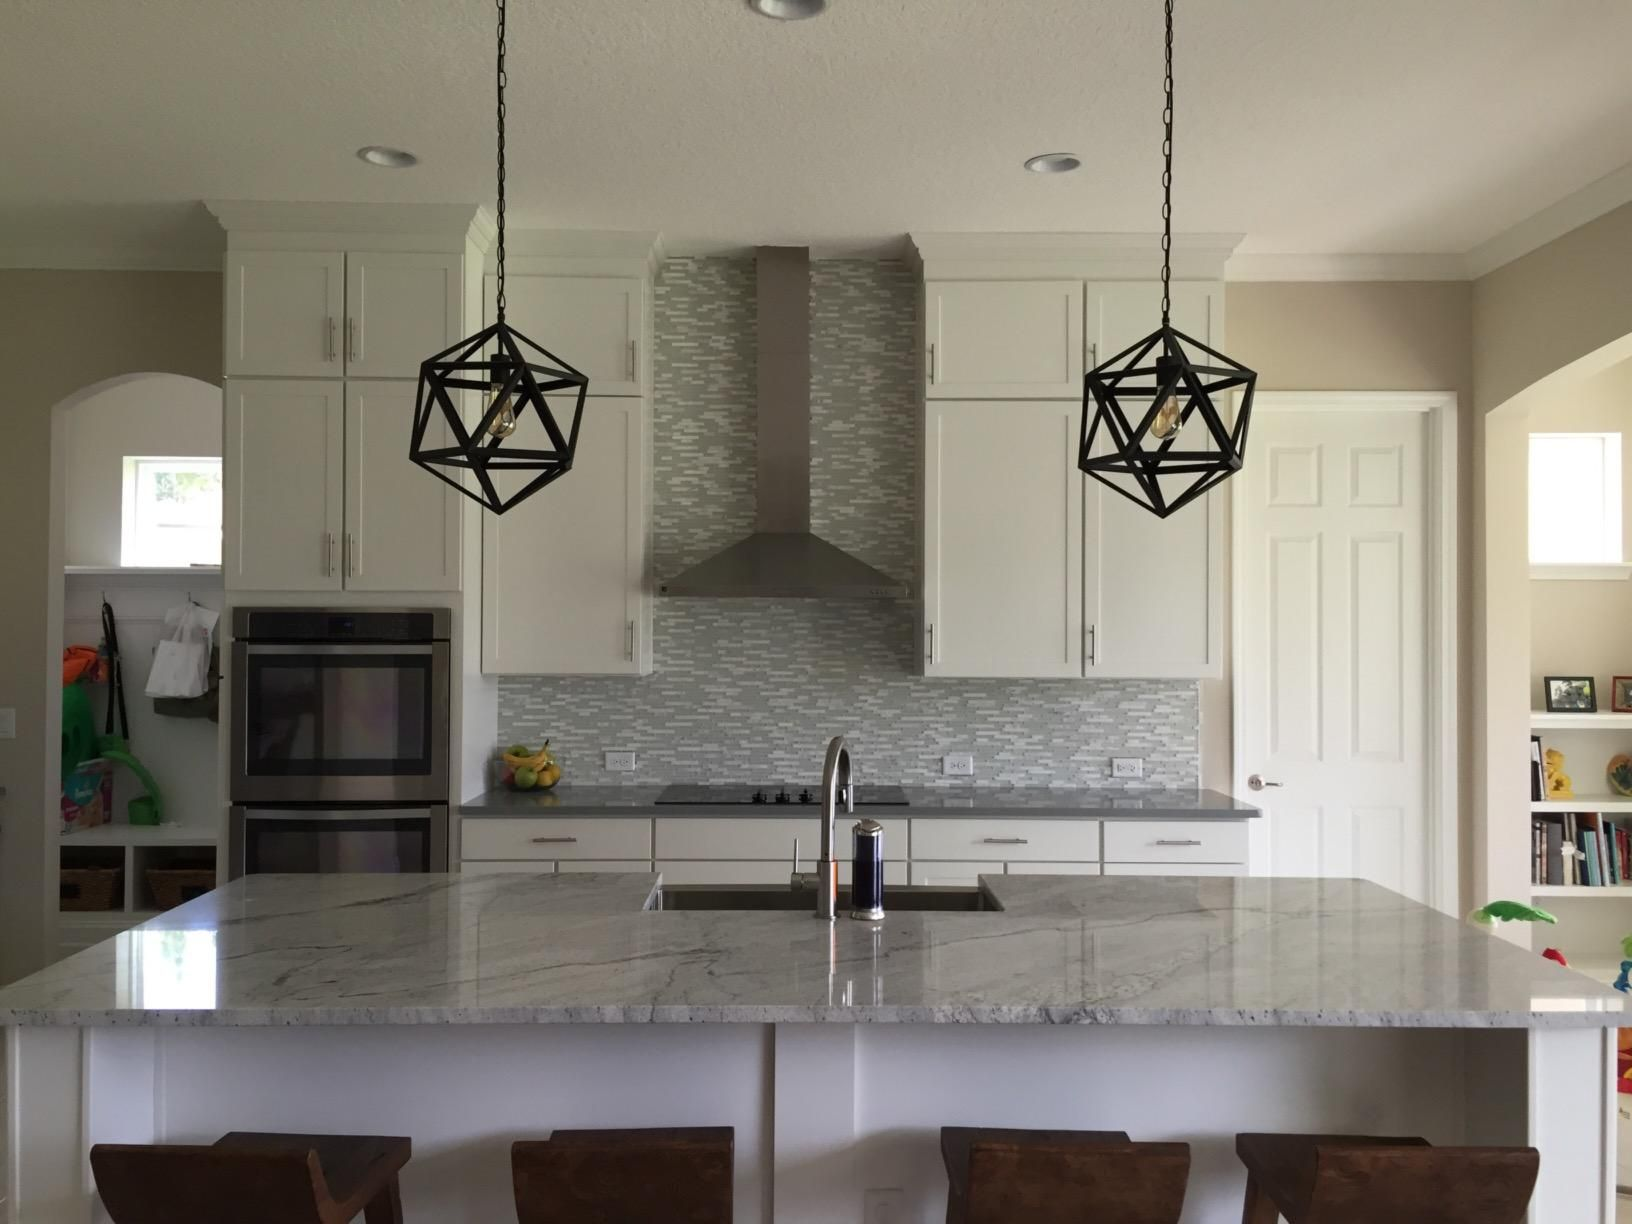 Cage pendant light chandeliers polyhedron this is exactly what i